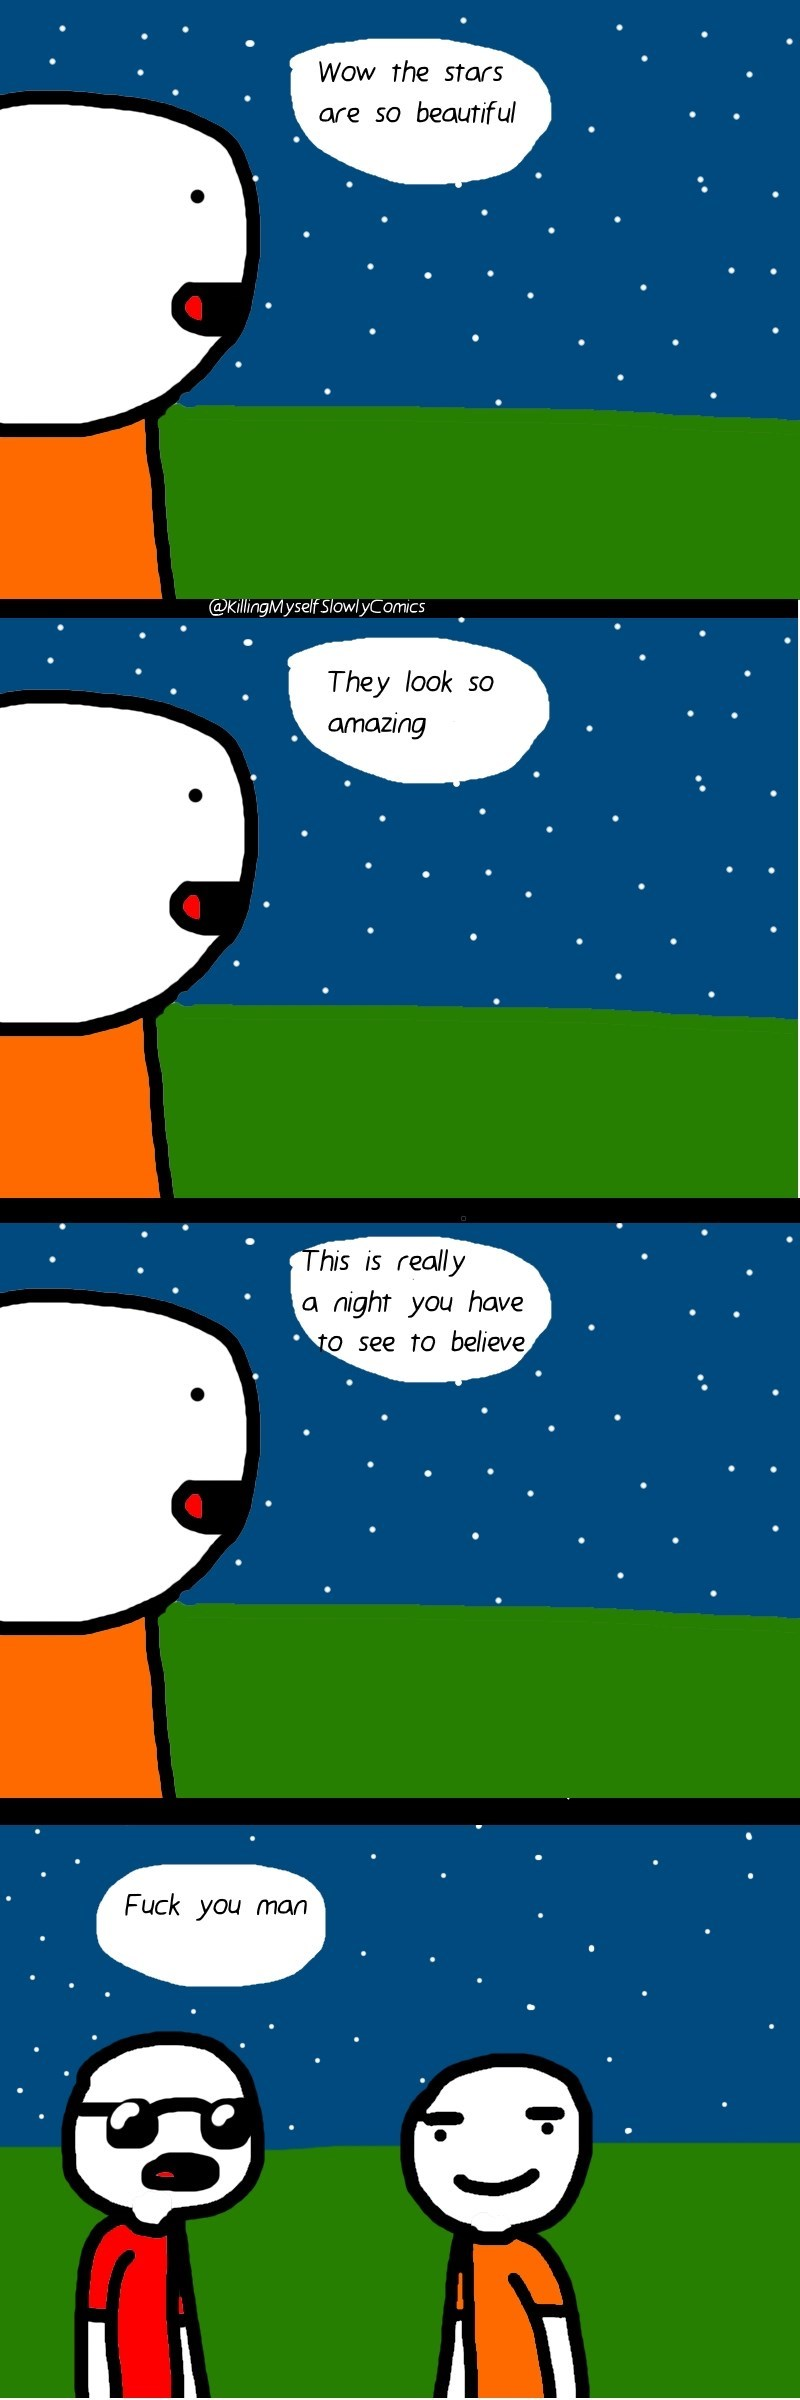 trolling blind night sky stars space web comics - 8803086848